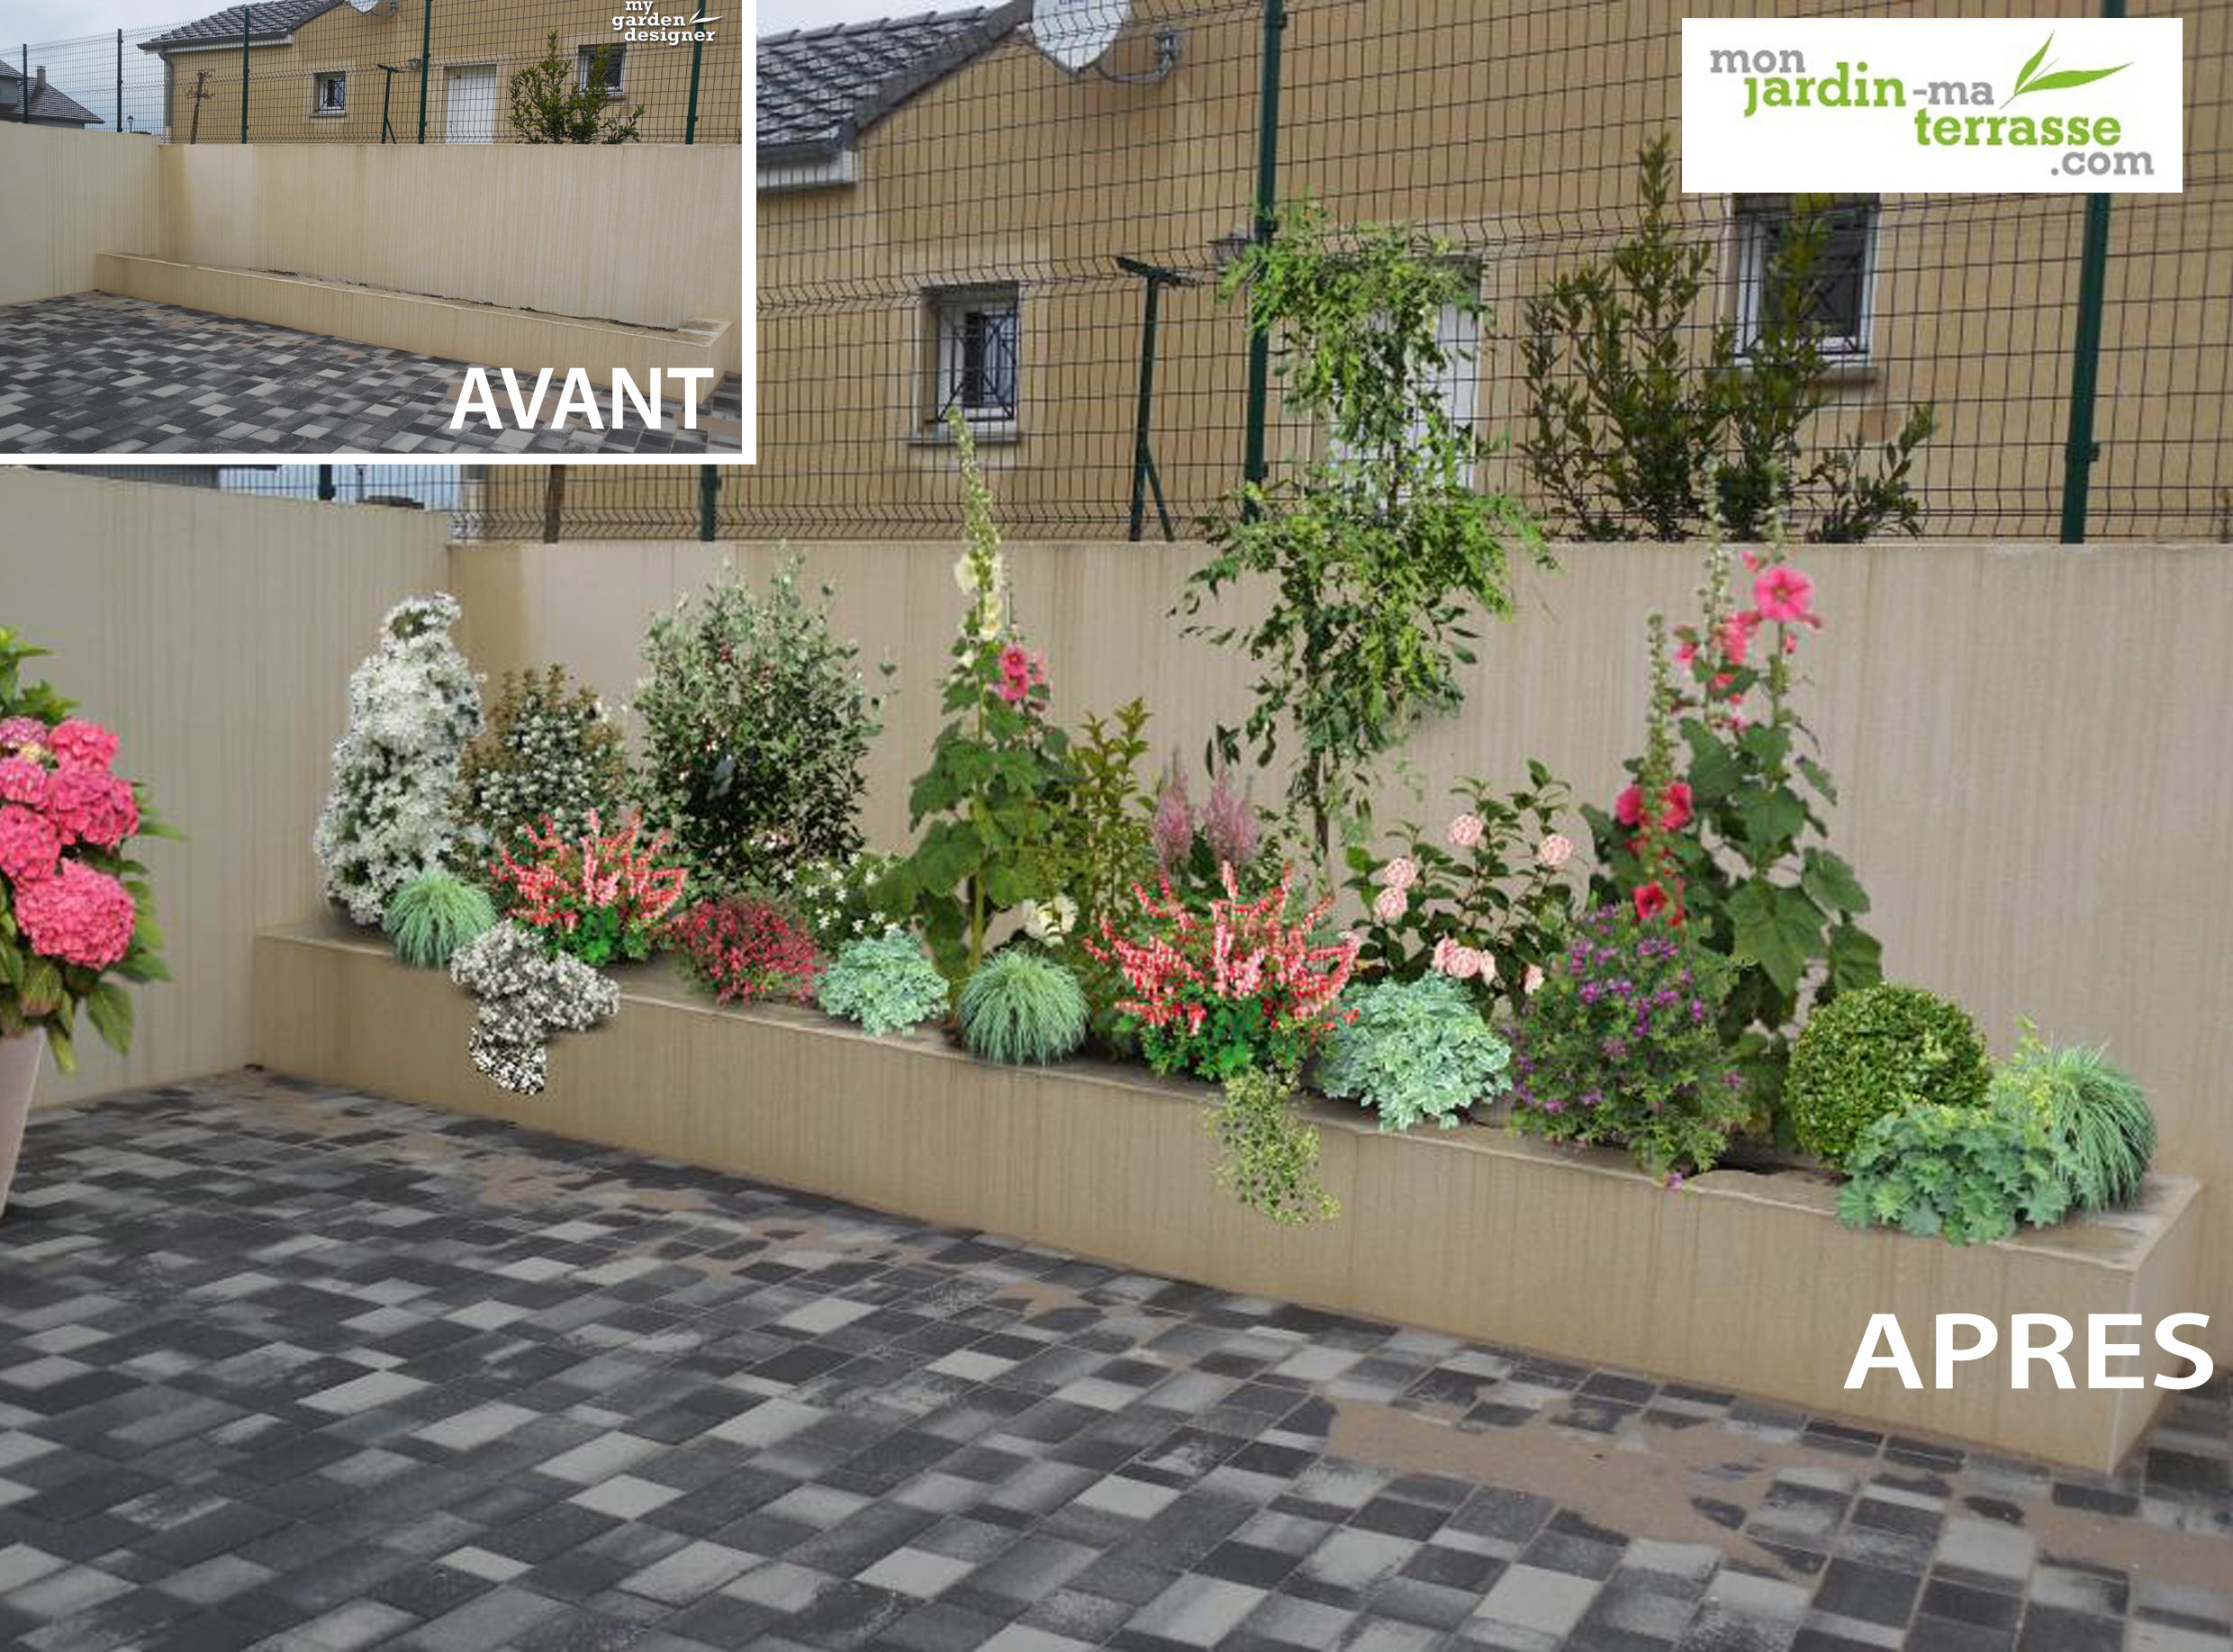 Amenagement jardiniere terrasse monjardin for Terrasse amenagement plantes